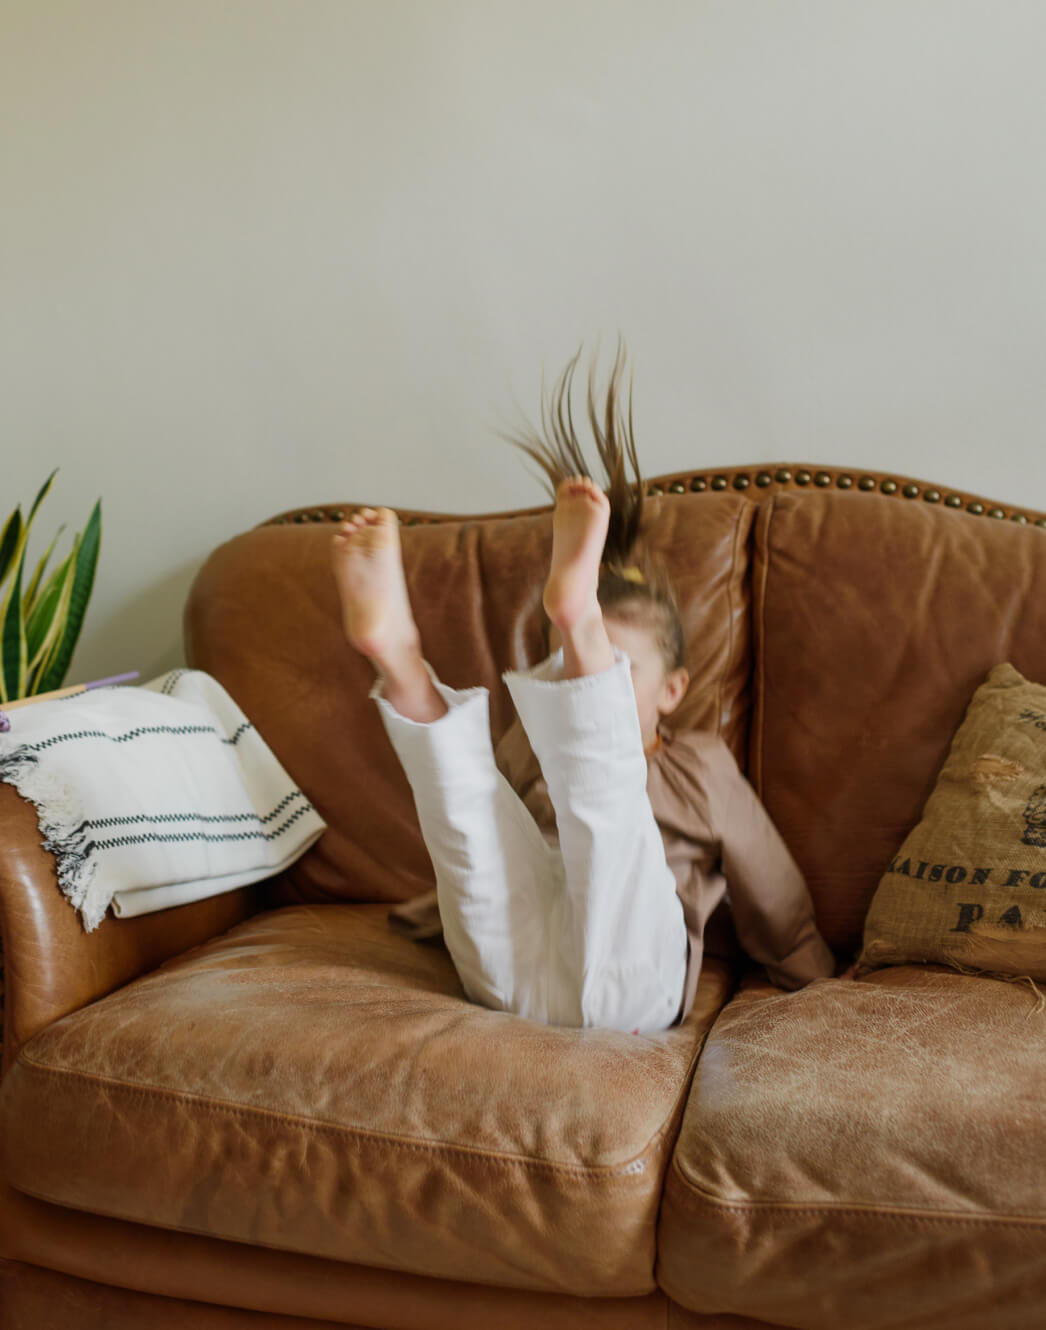 Girl jumping on brown couch.